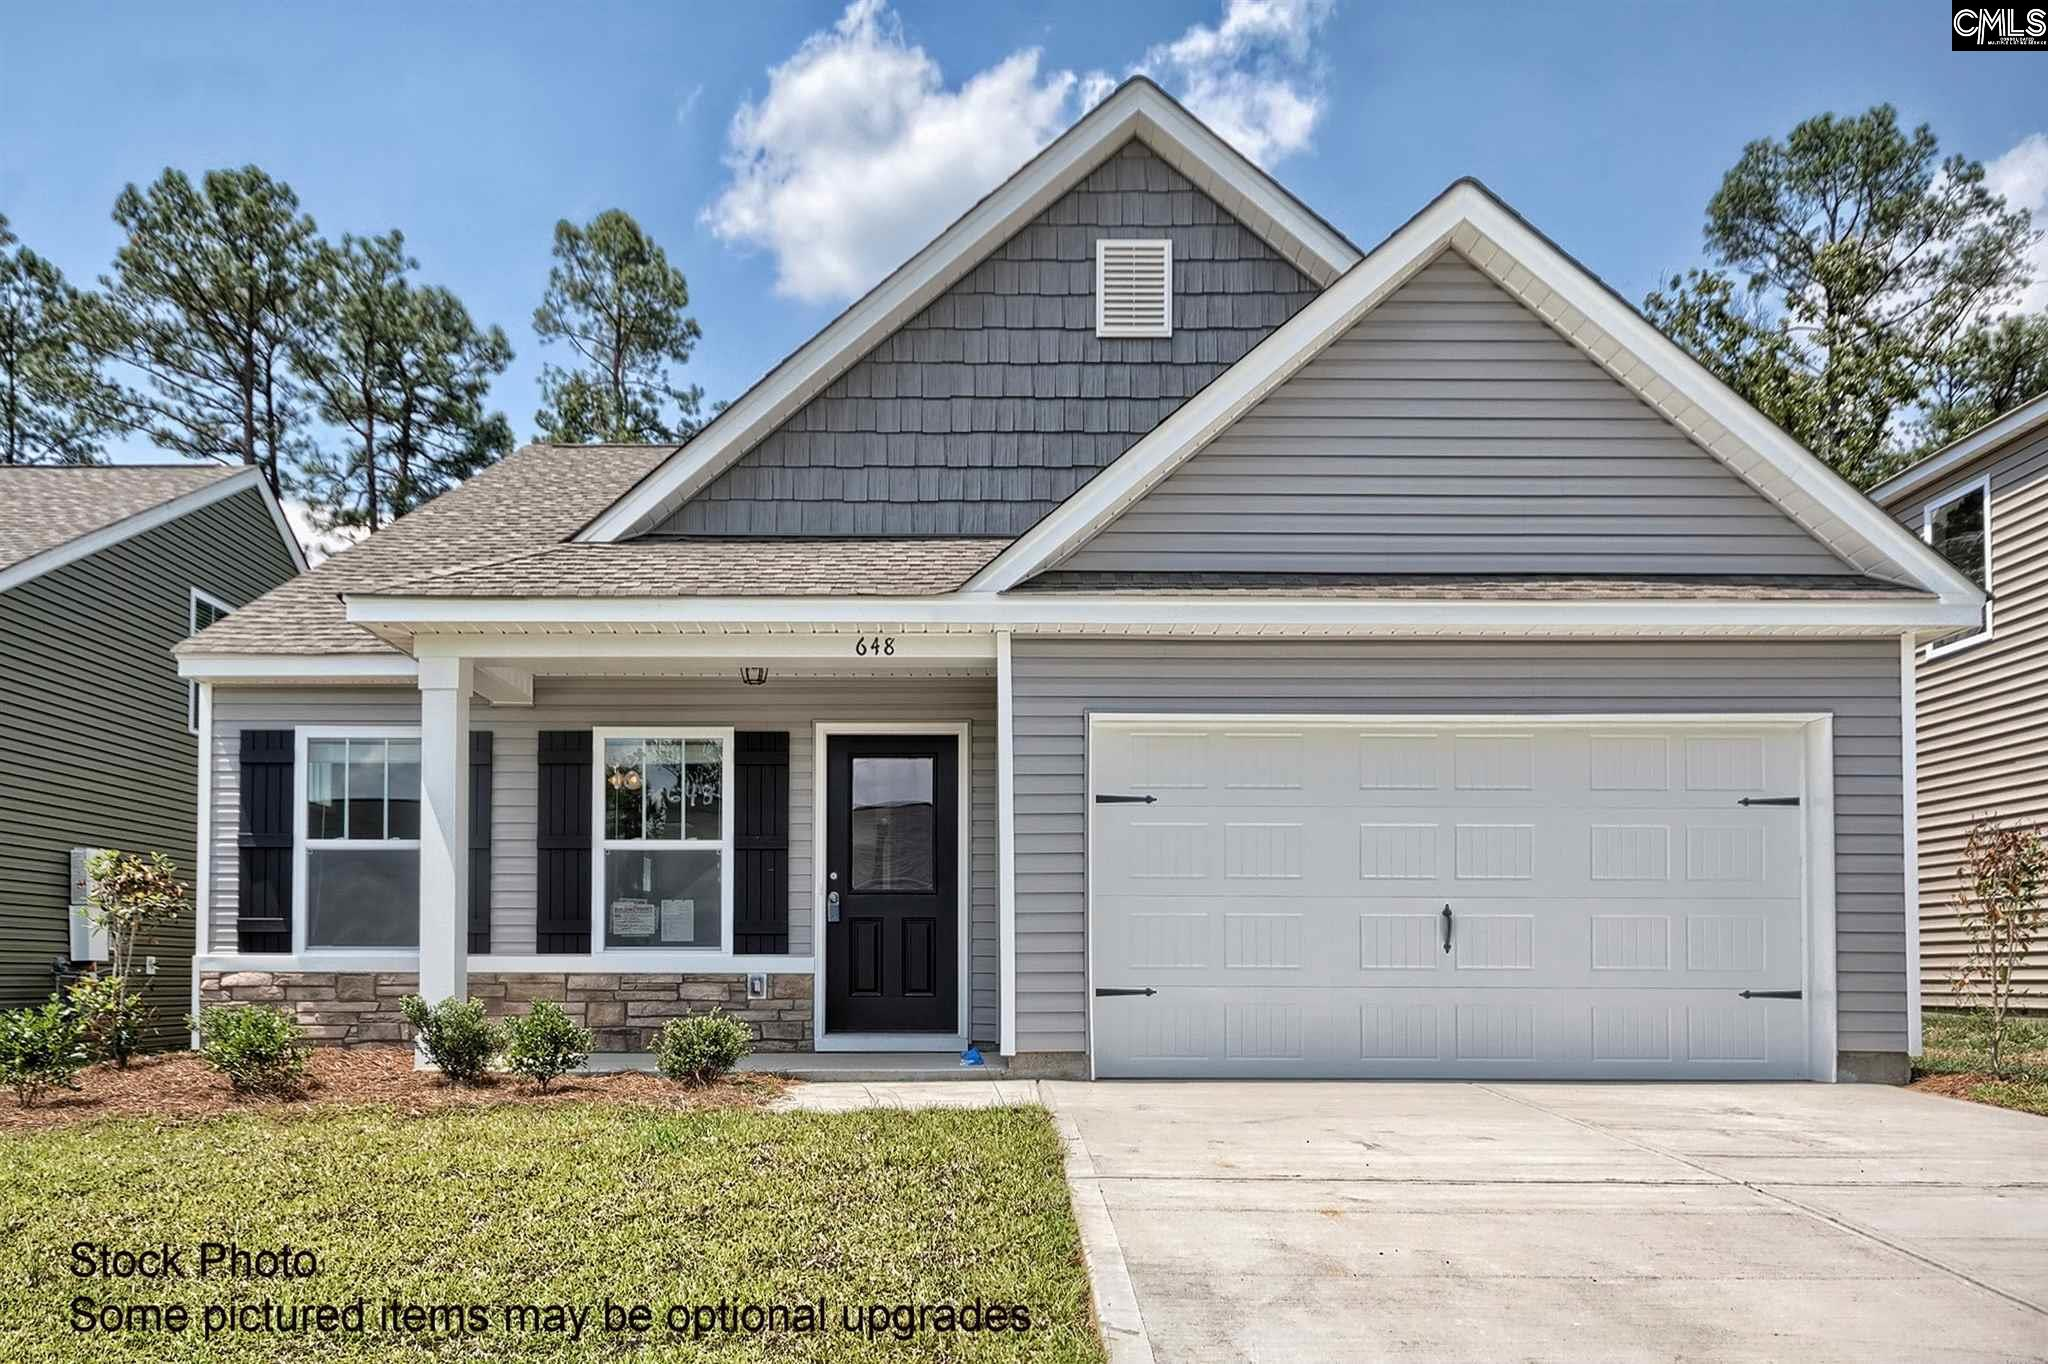 535 Lawndale Gaston, SC 29053